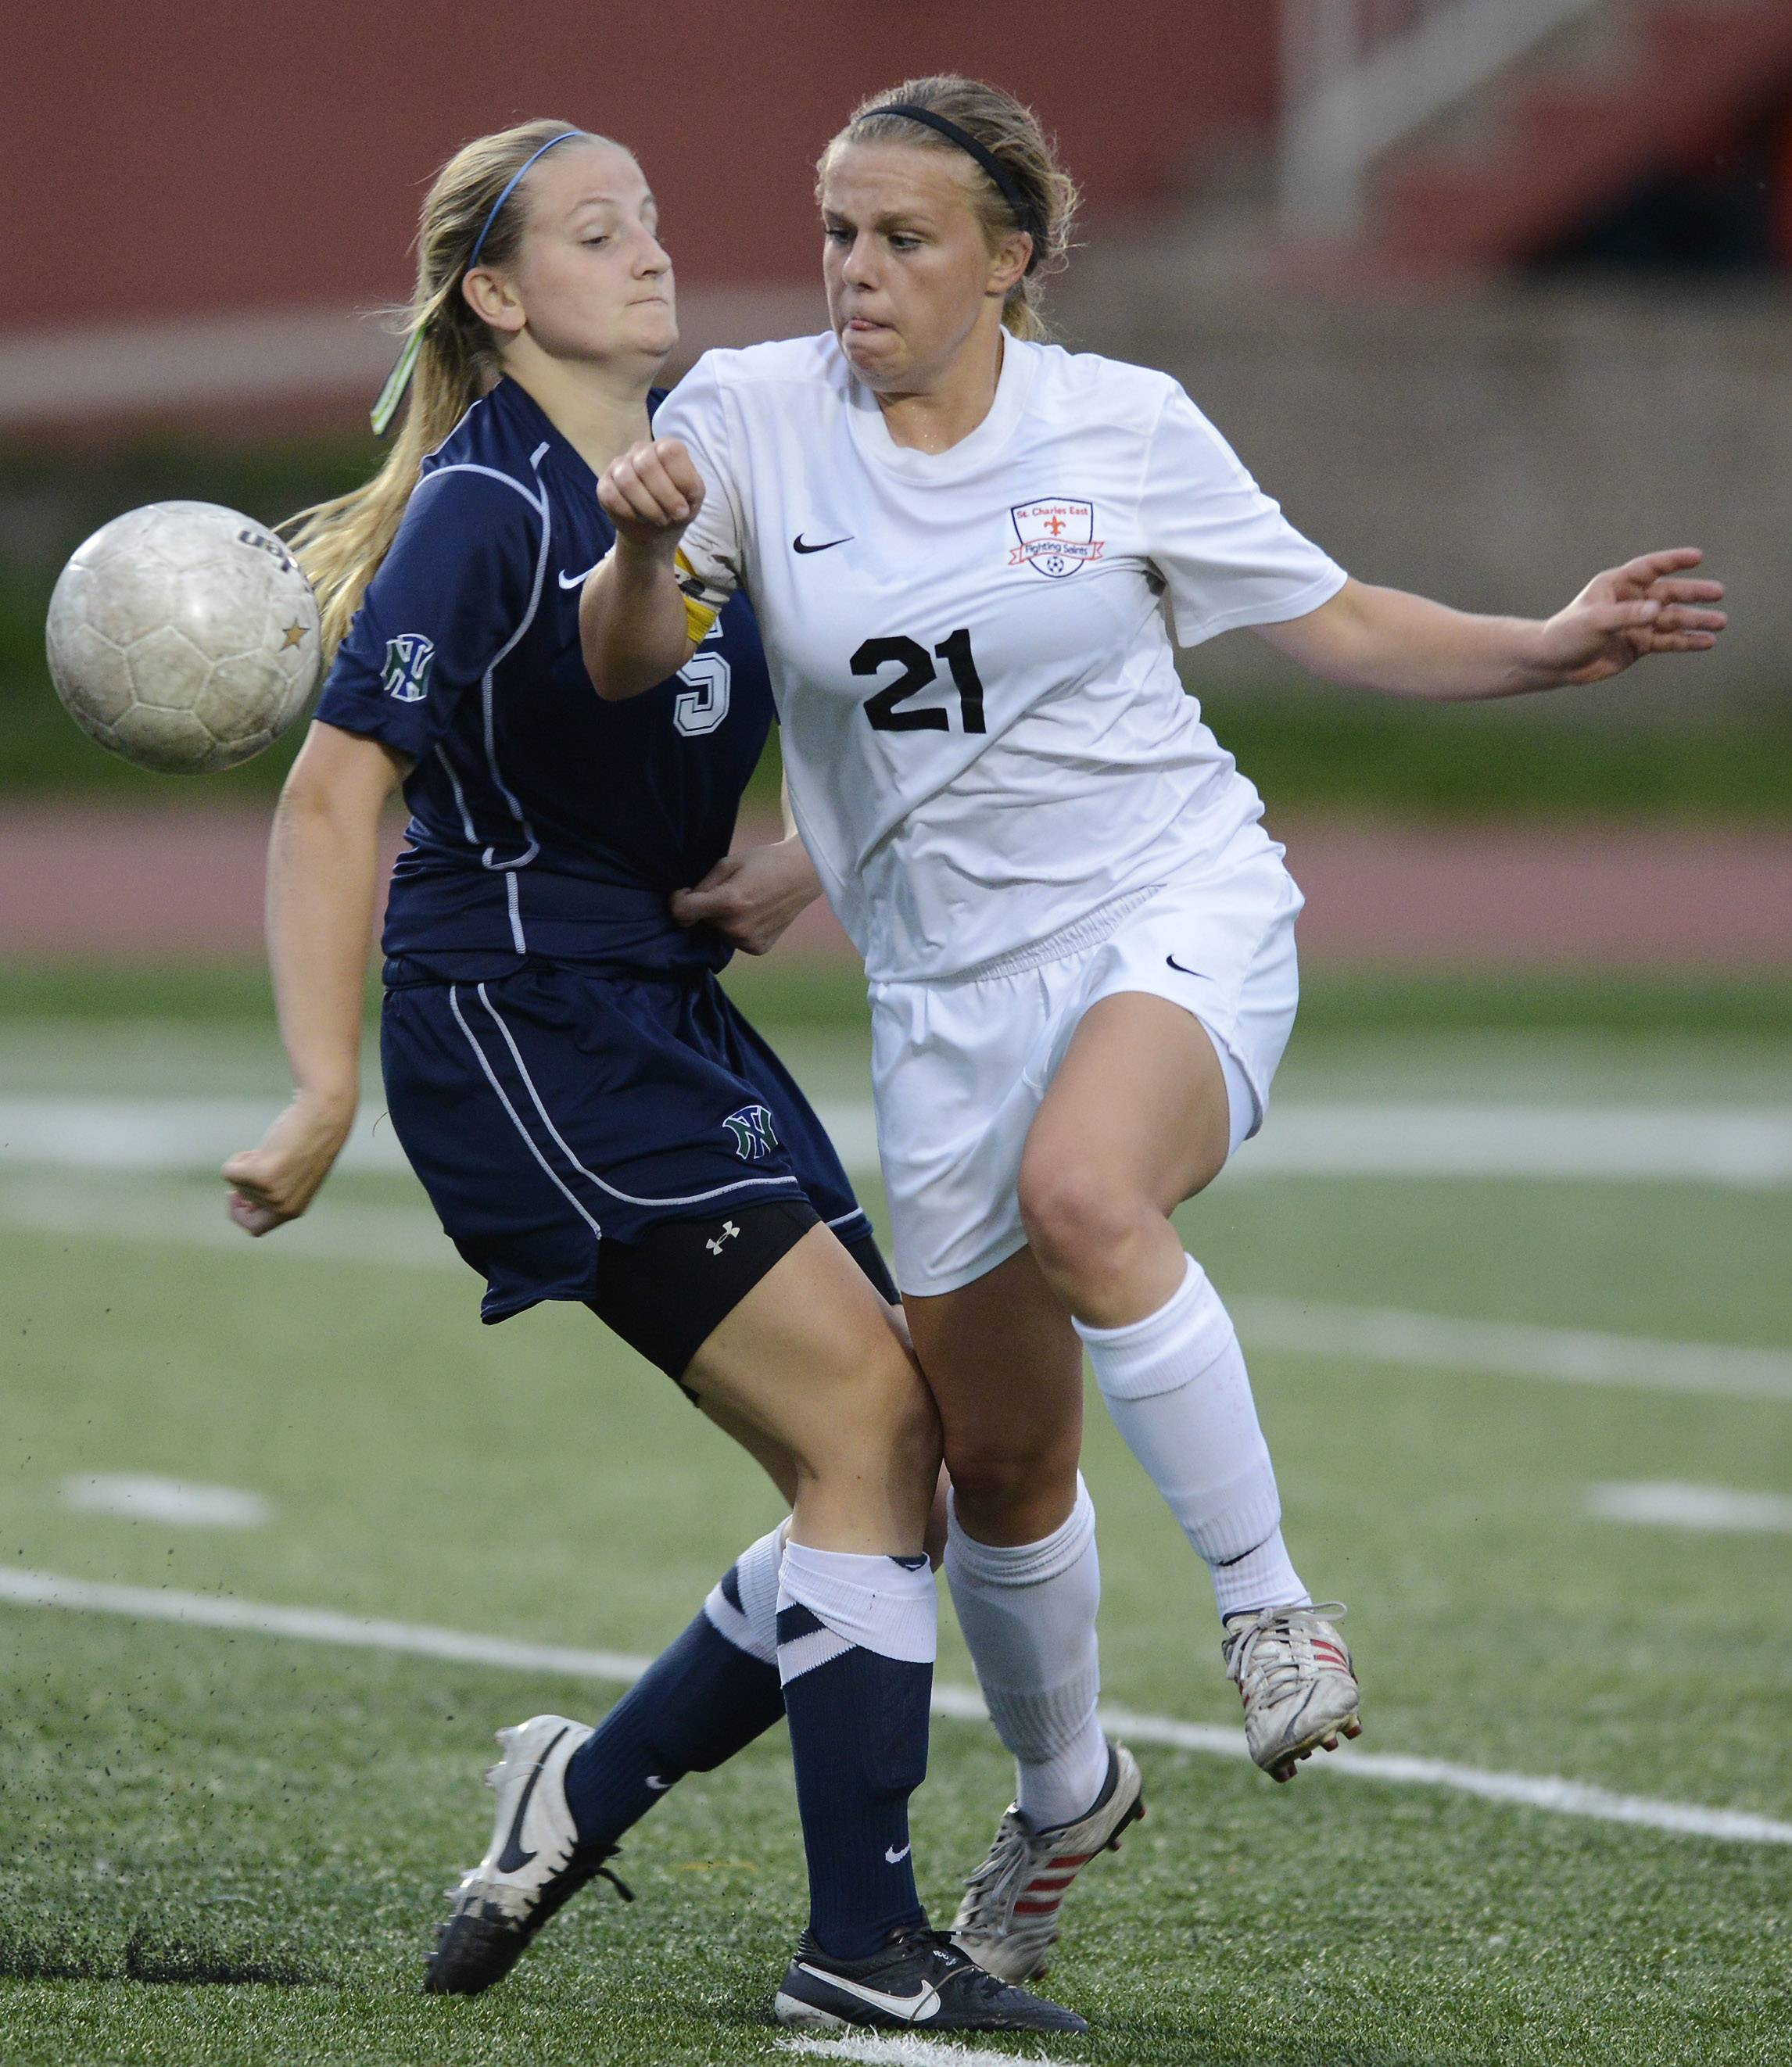 Amanda Hilton, right, of St. Charles East tries to make her way past Maggie Armstrong of New Trier during the girls soccer Class 3A state final at North Central College in Naperville Saturday.